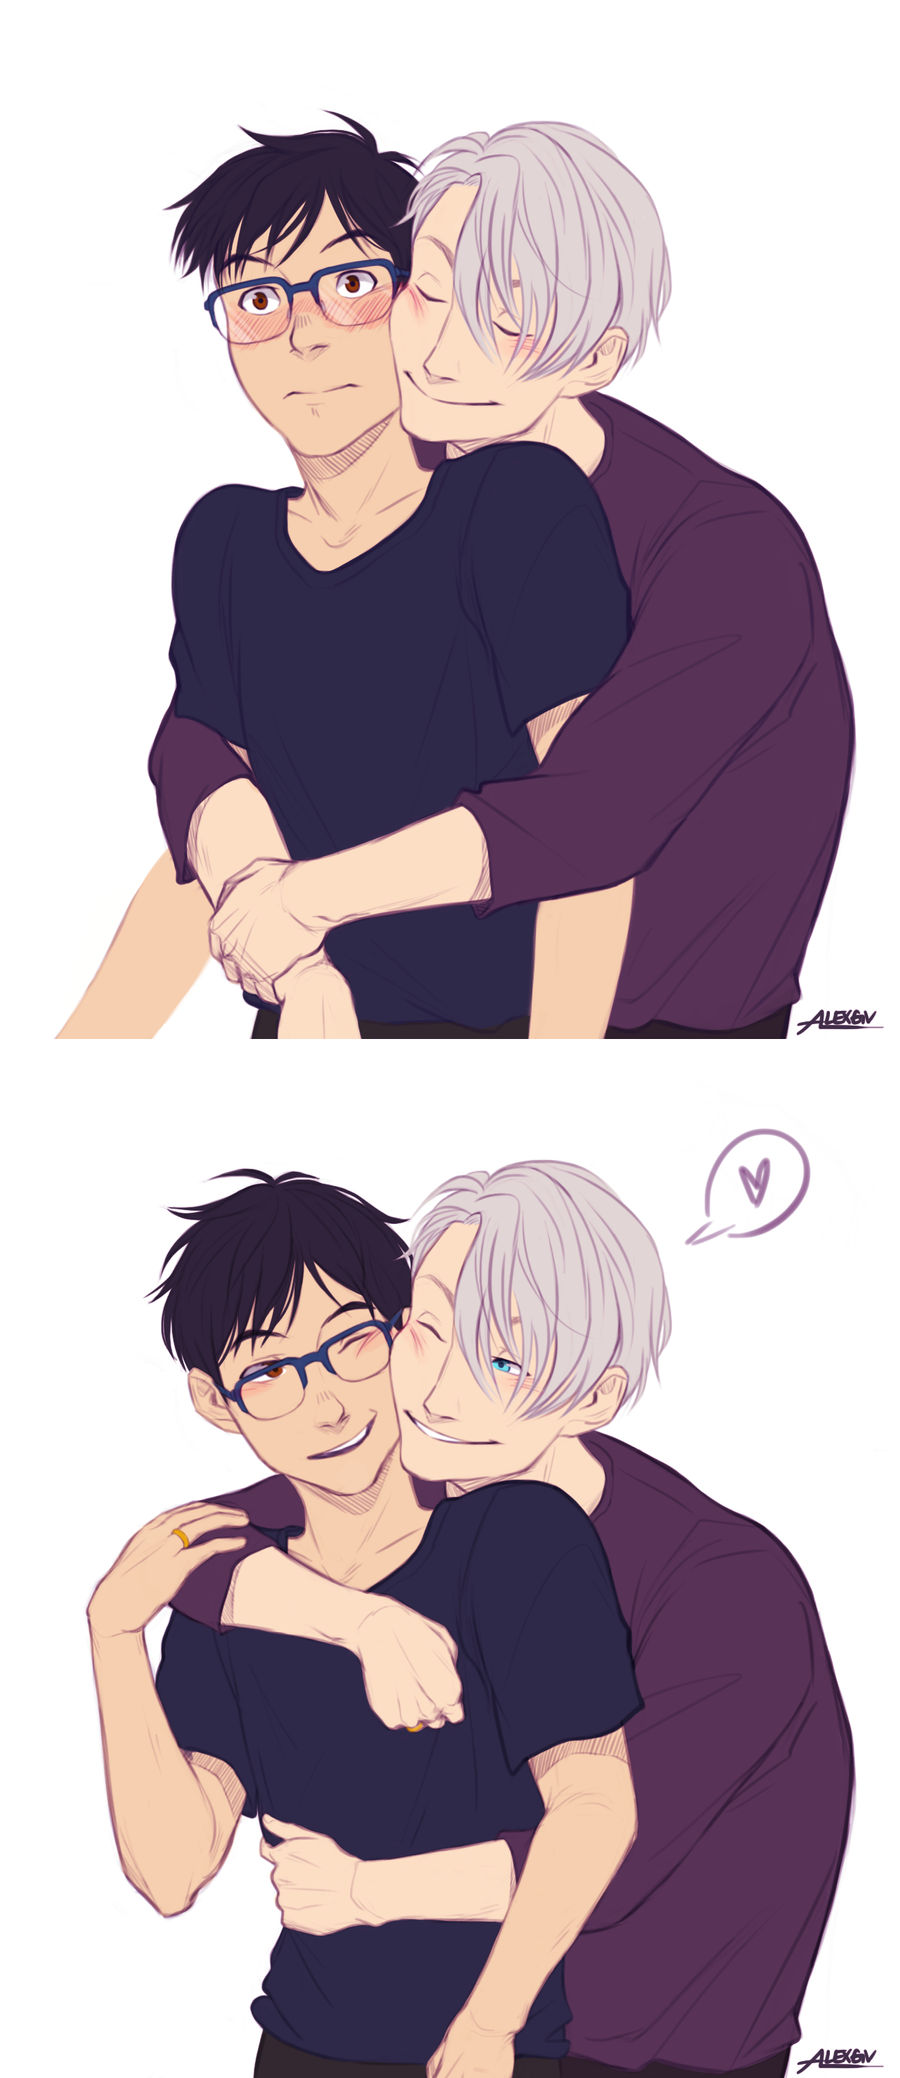 The transition of Yuuri reacting to Victor's hugs